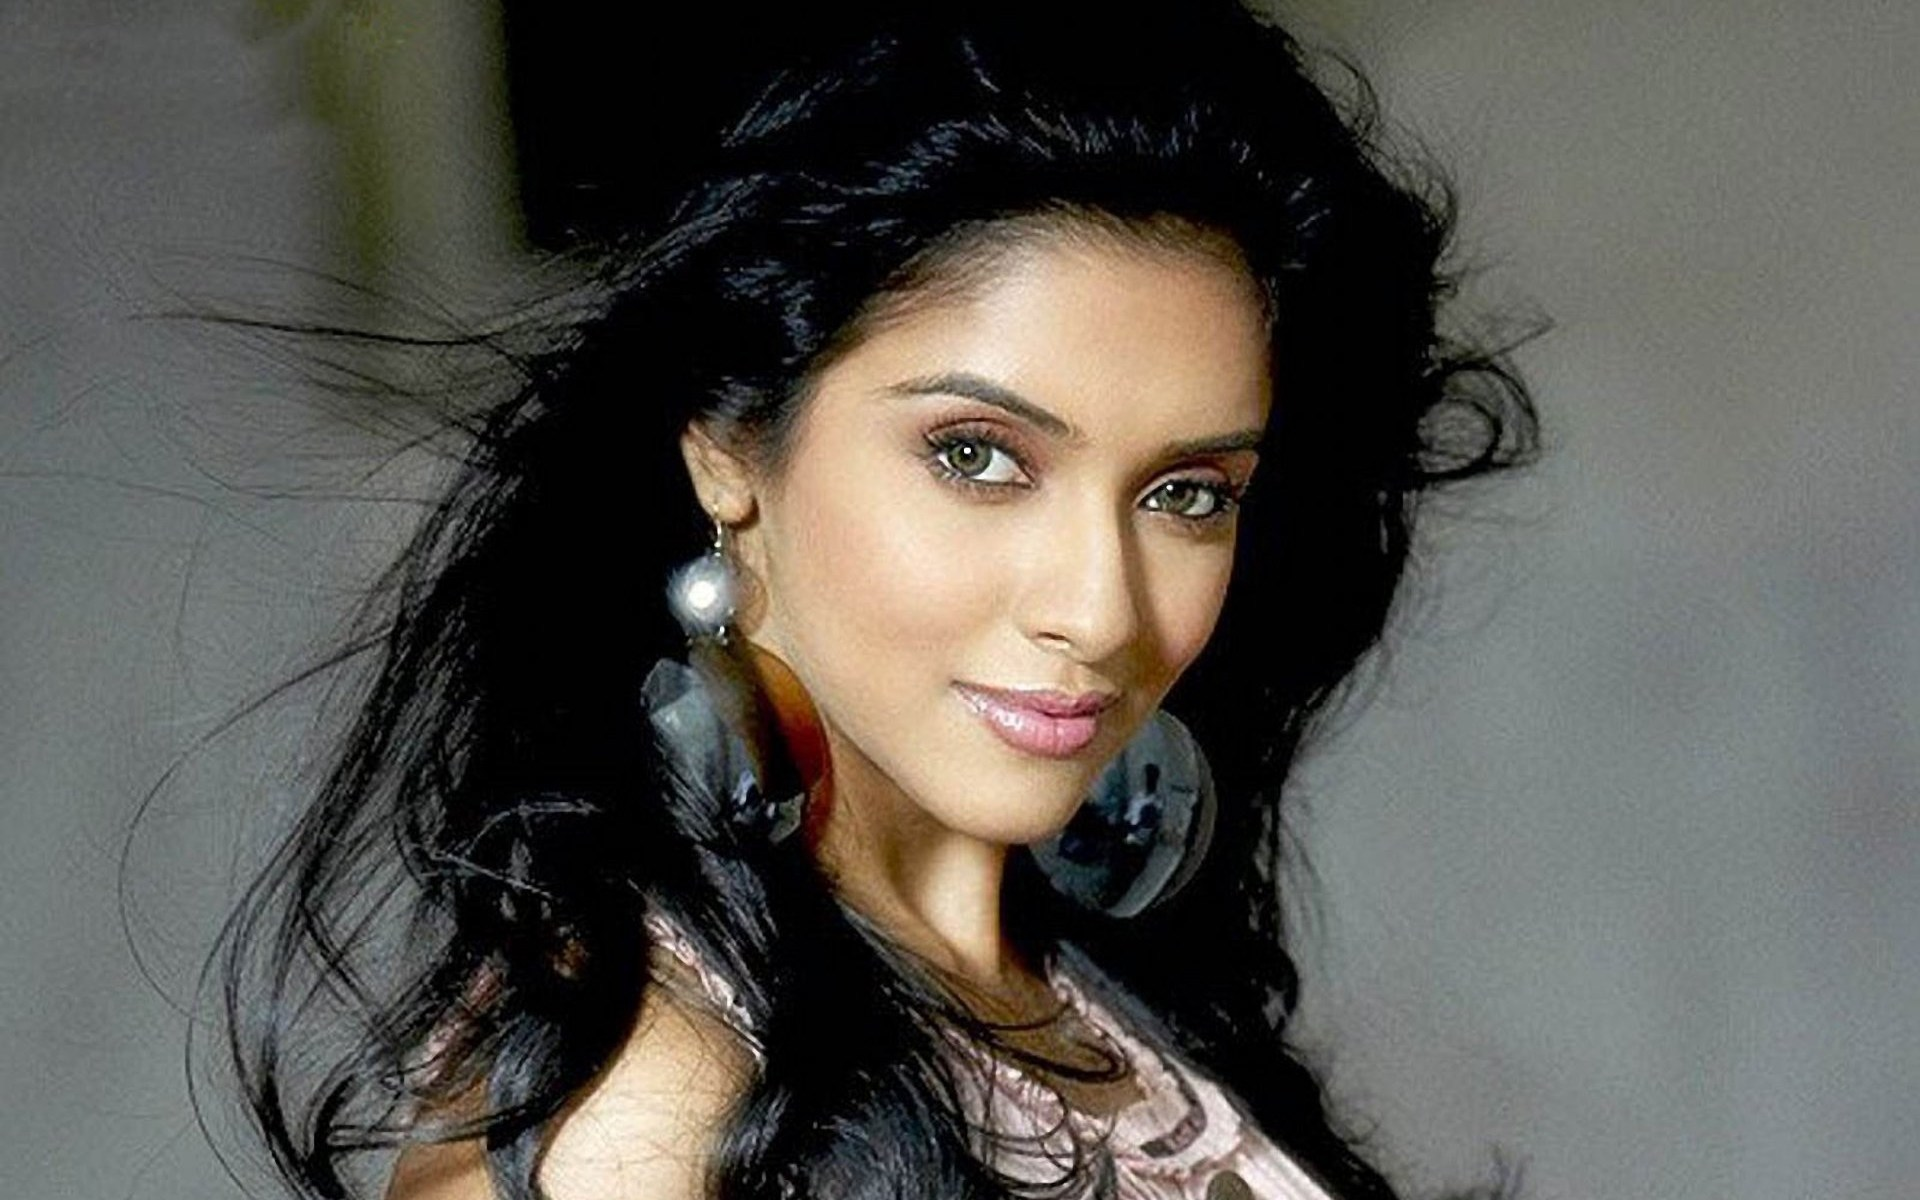 Asin HD wallpaper for download